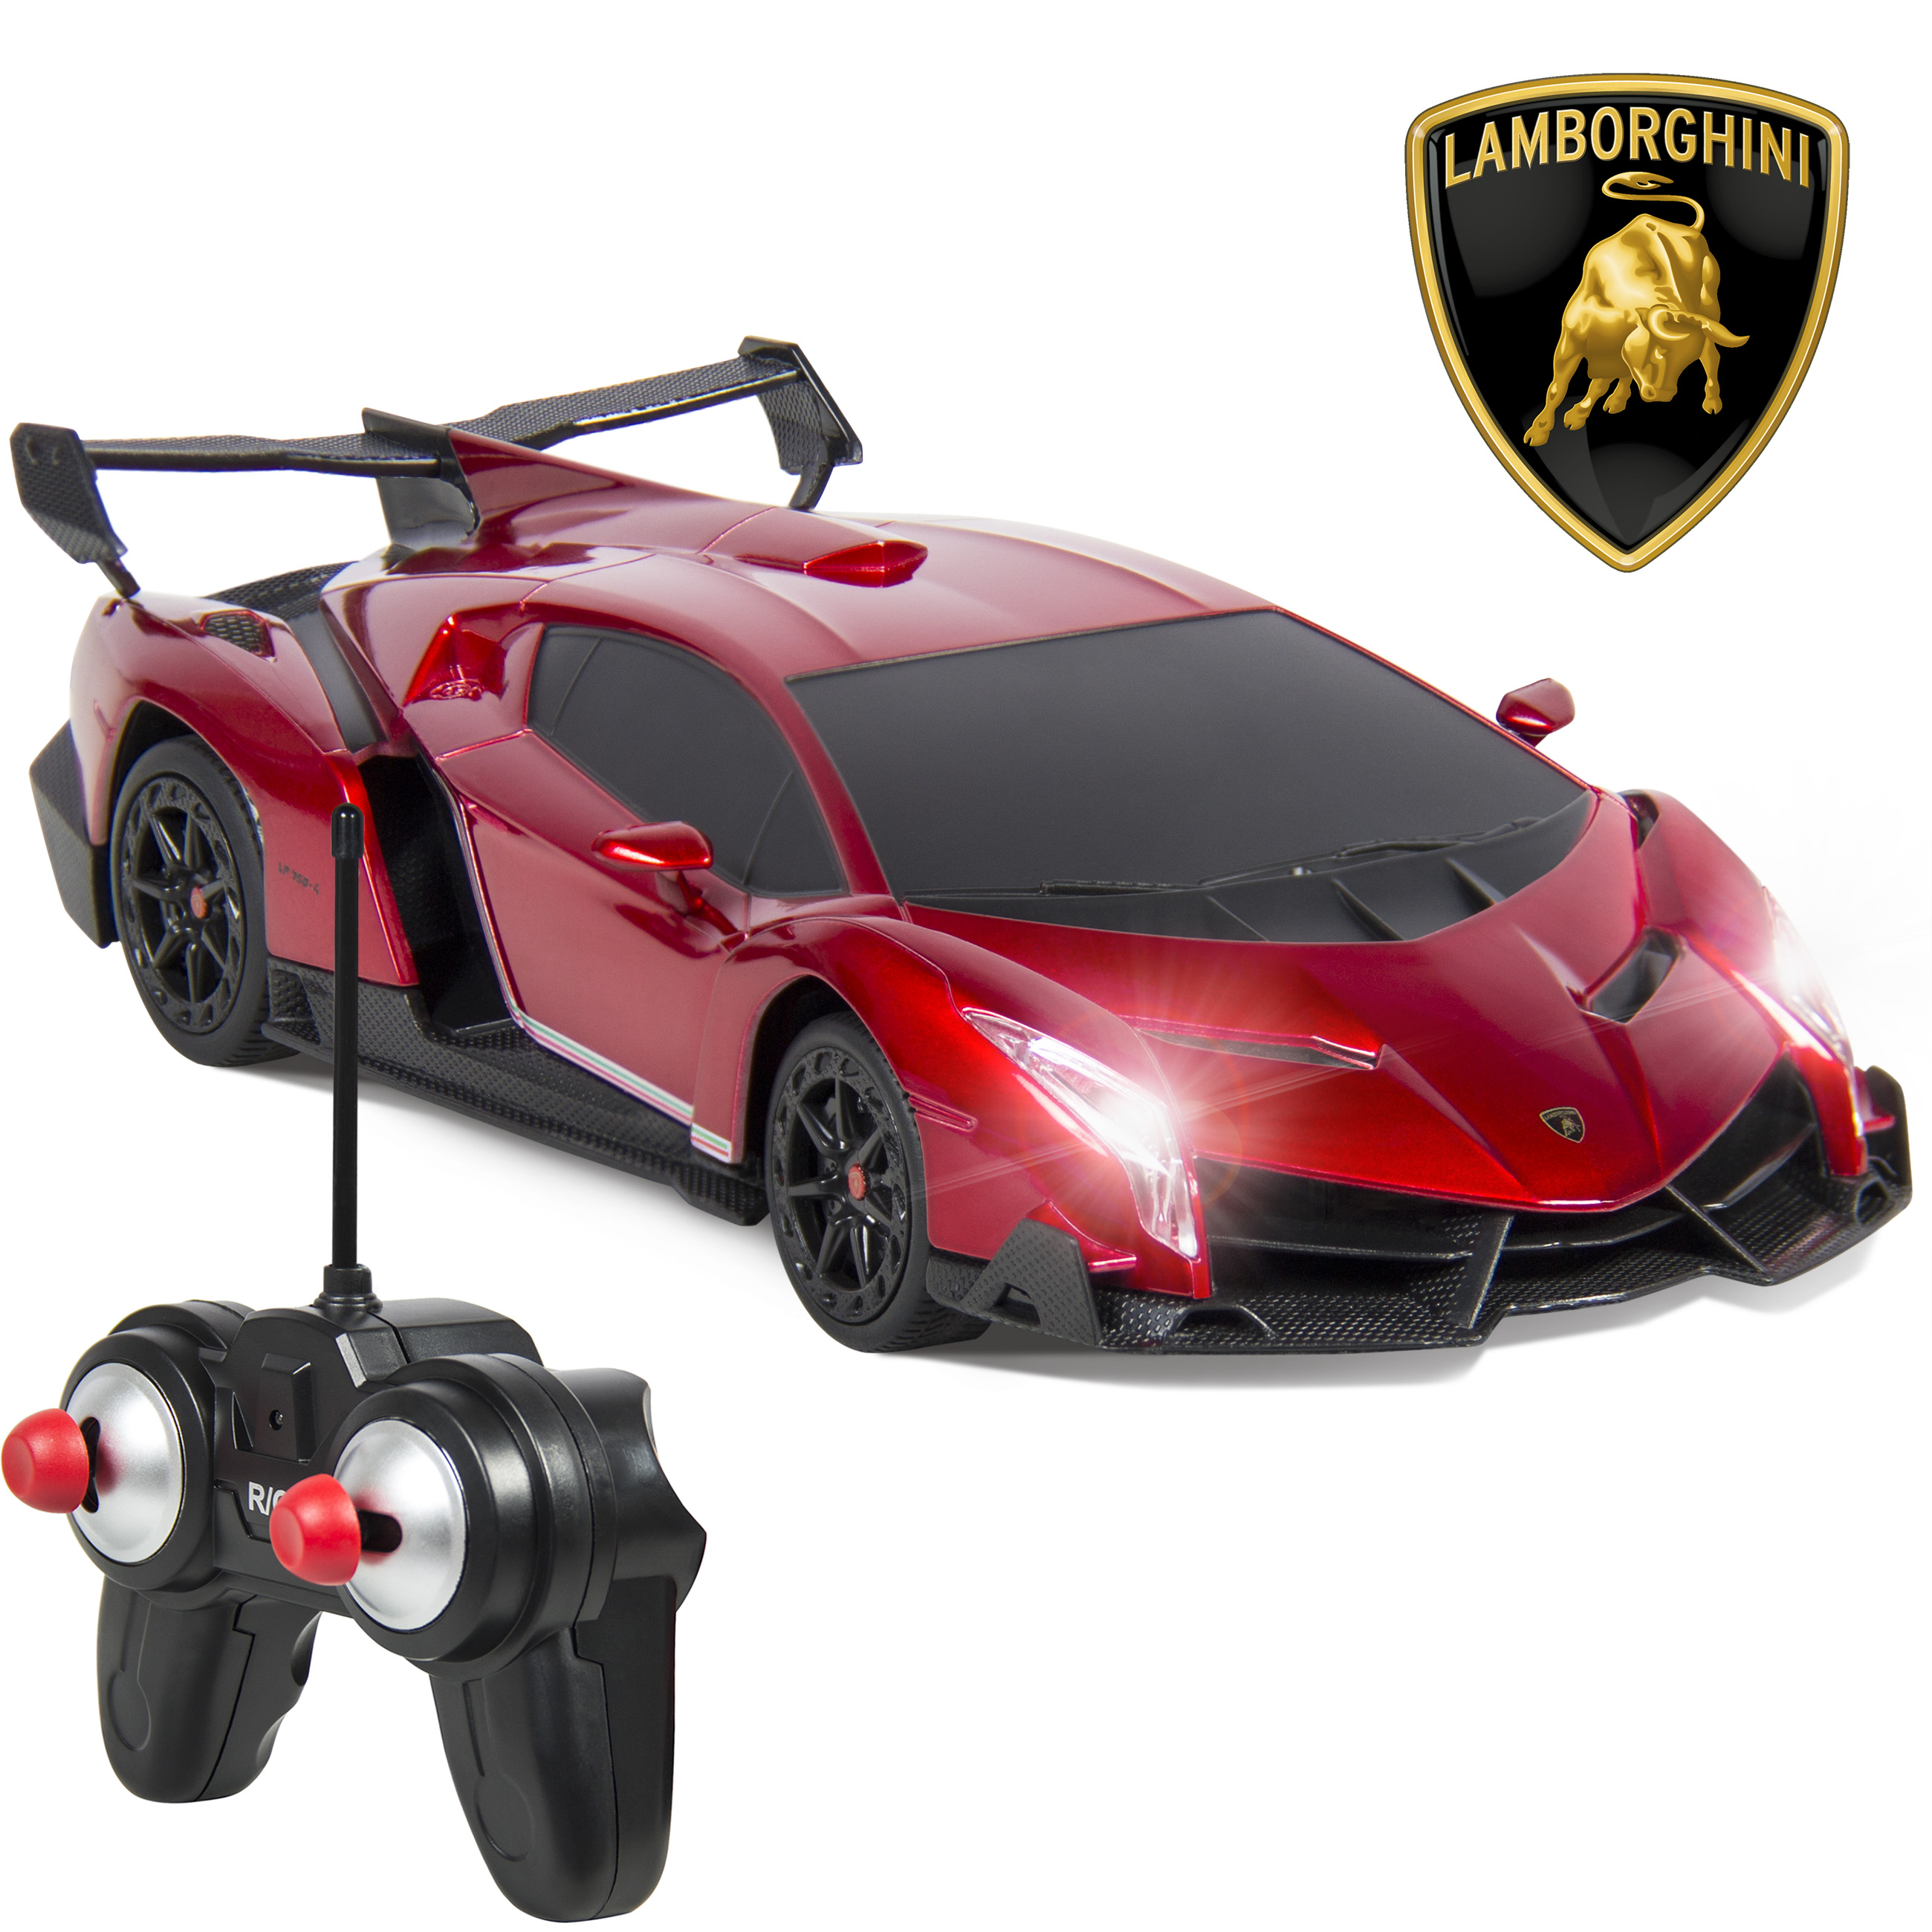 1/24 Officially Licensed RC Lamborghini Veneno Sport Racing Car W/ 27MHz  Control